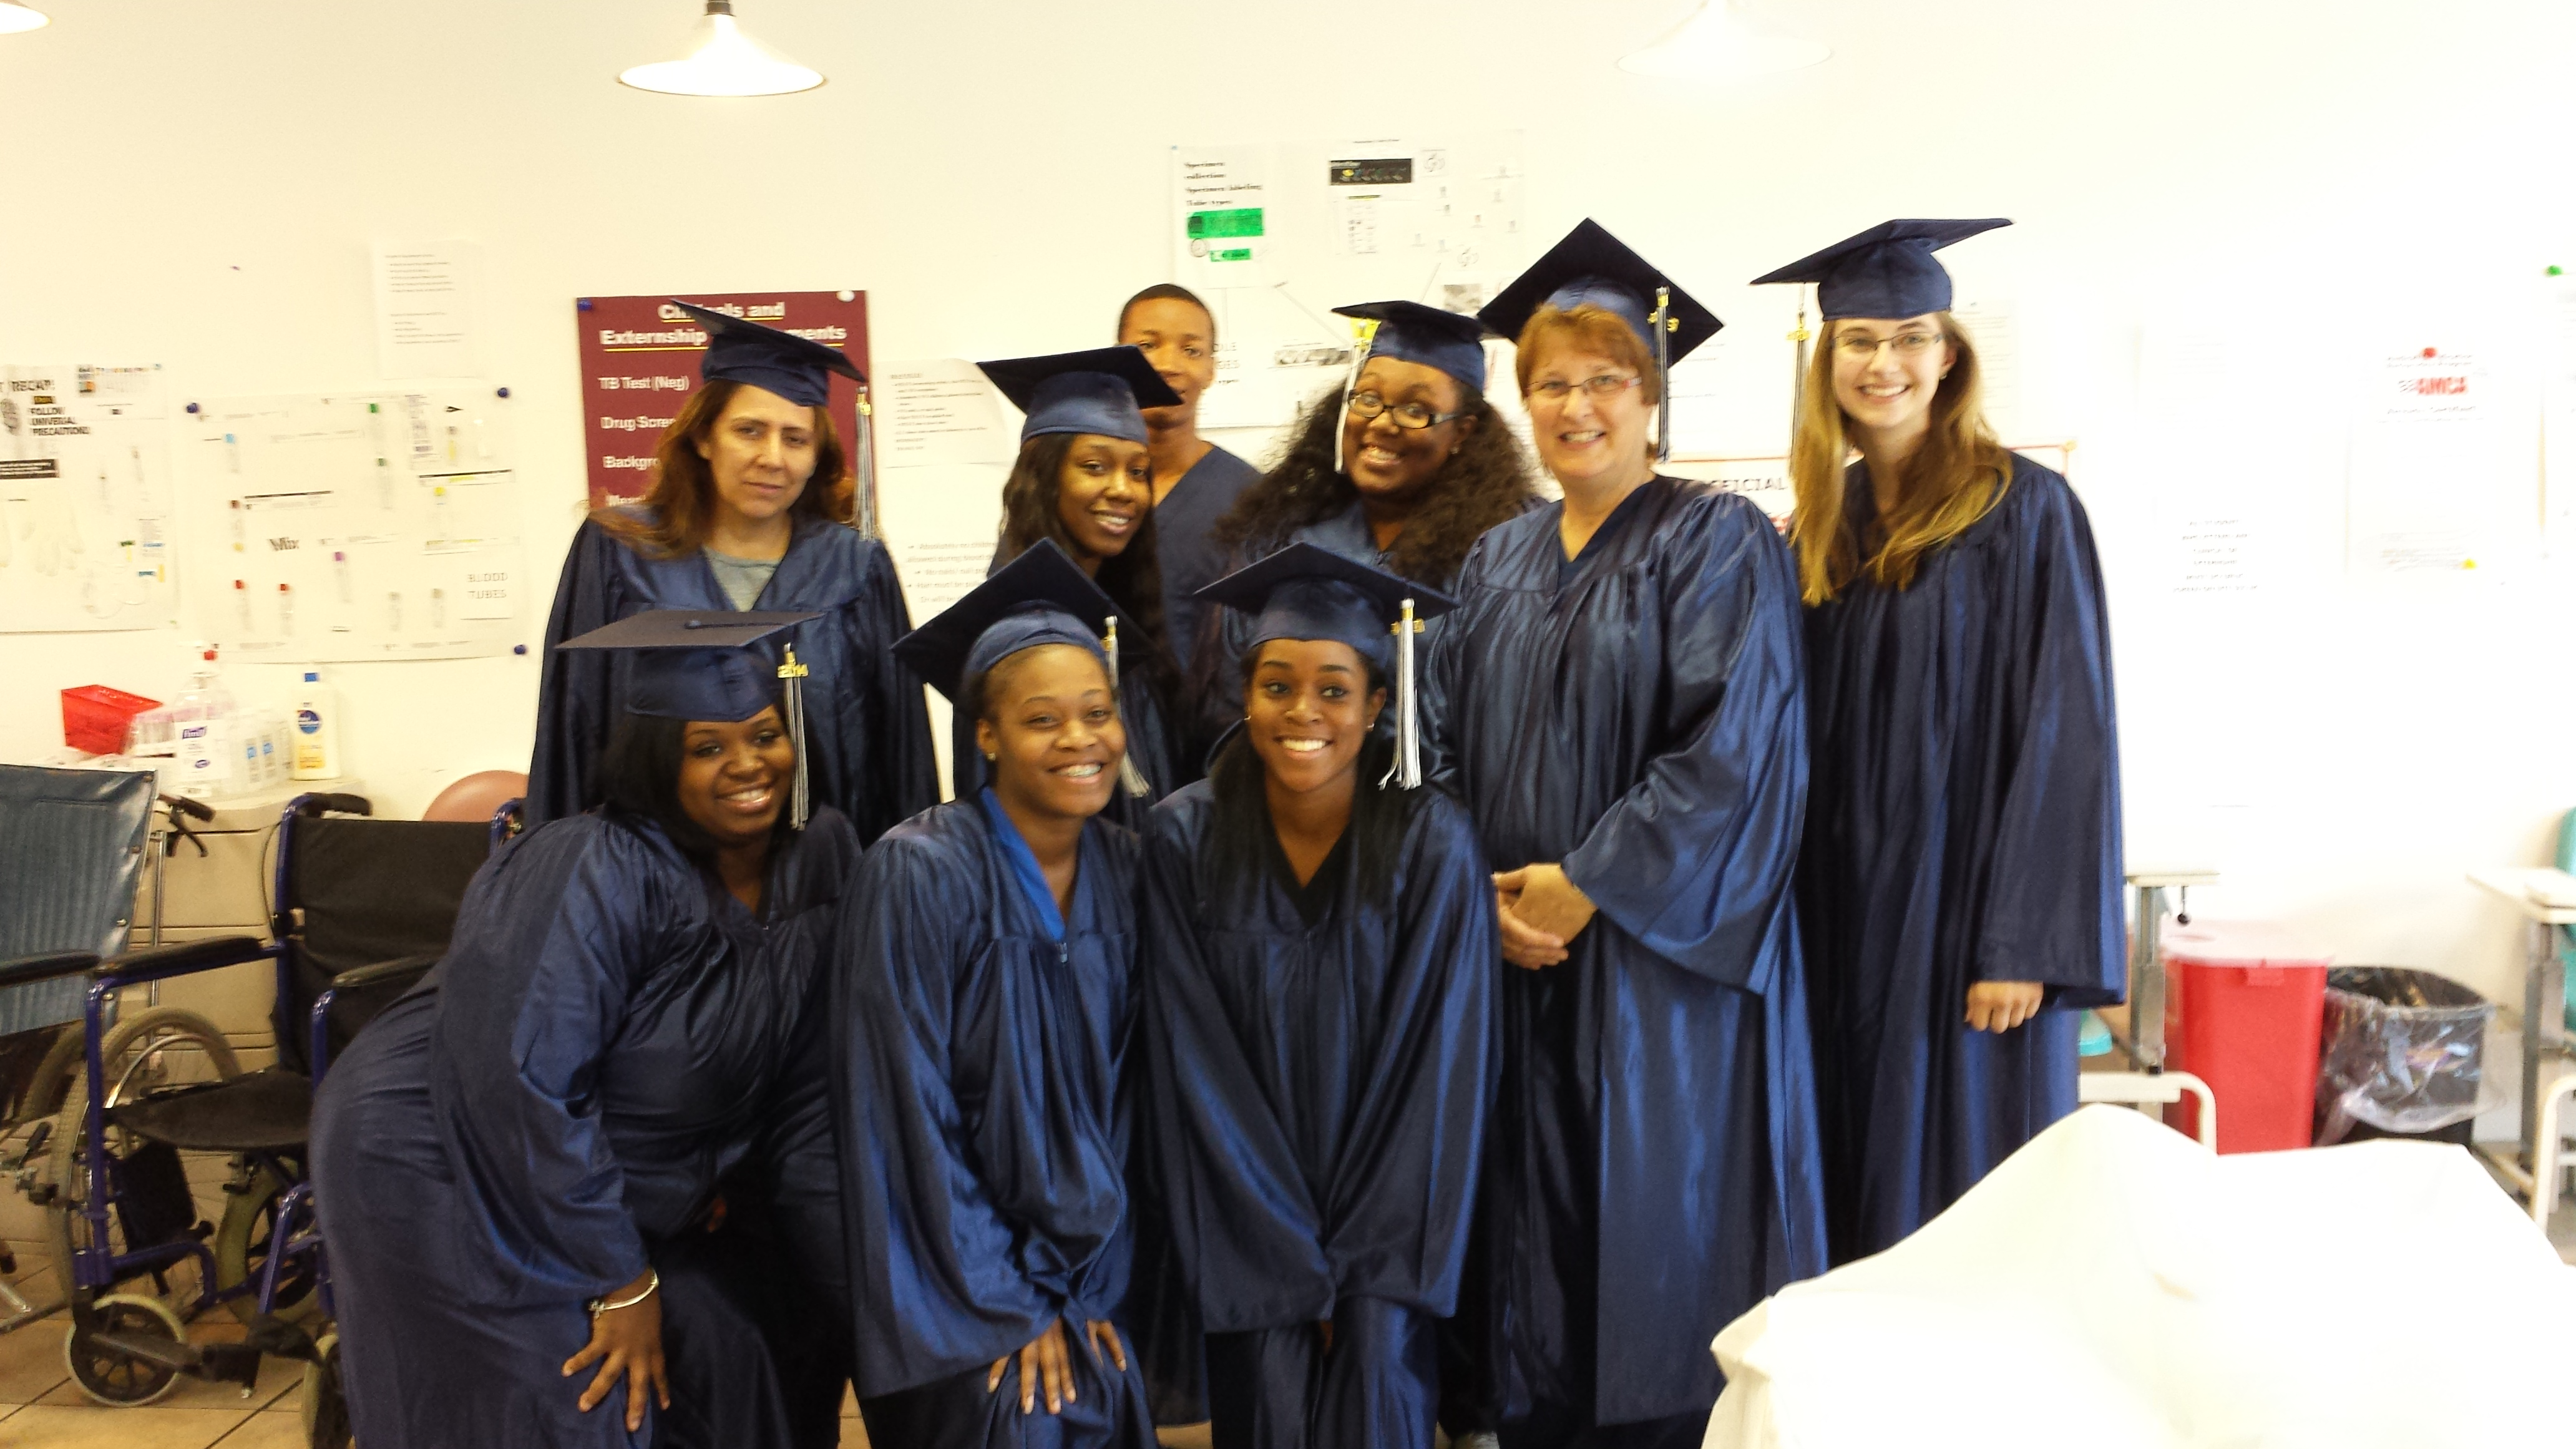 Patient care technician 500 phlebotomy career training we are so proud of our graduates 1betcityfo Choice Image